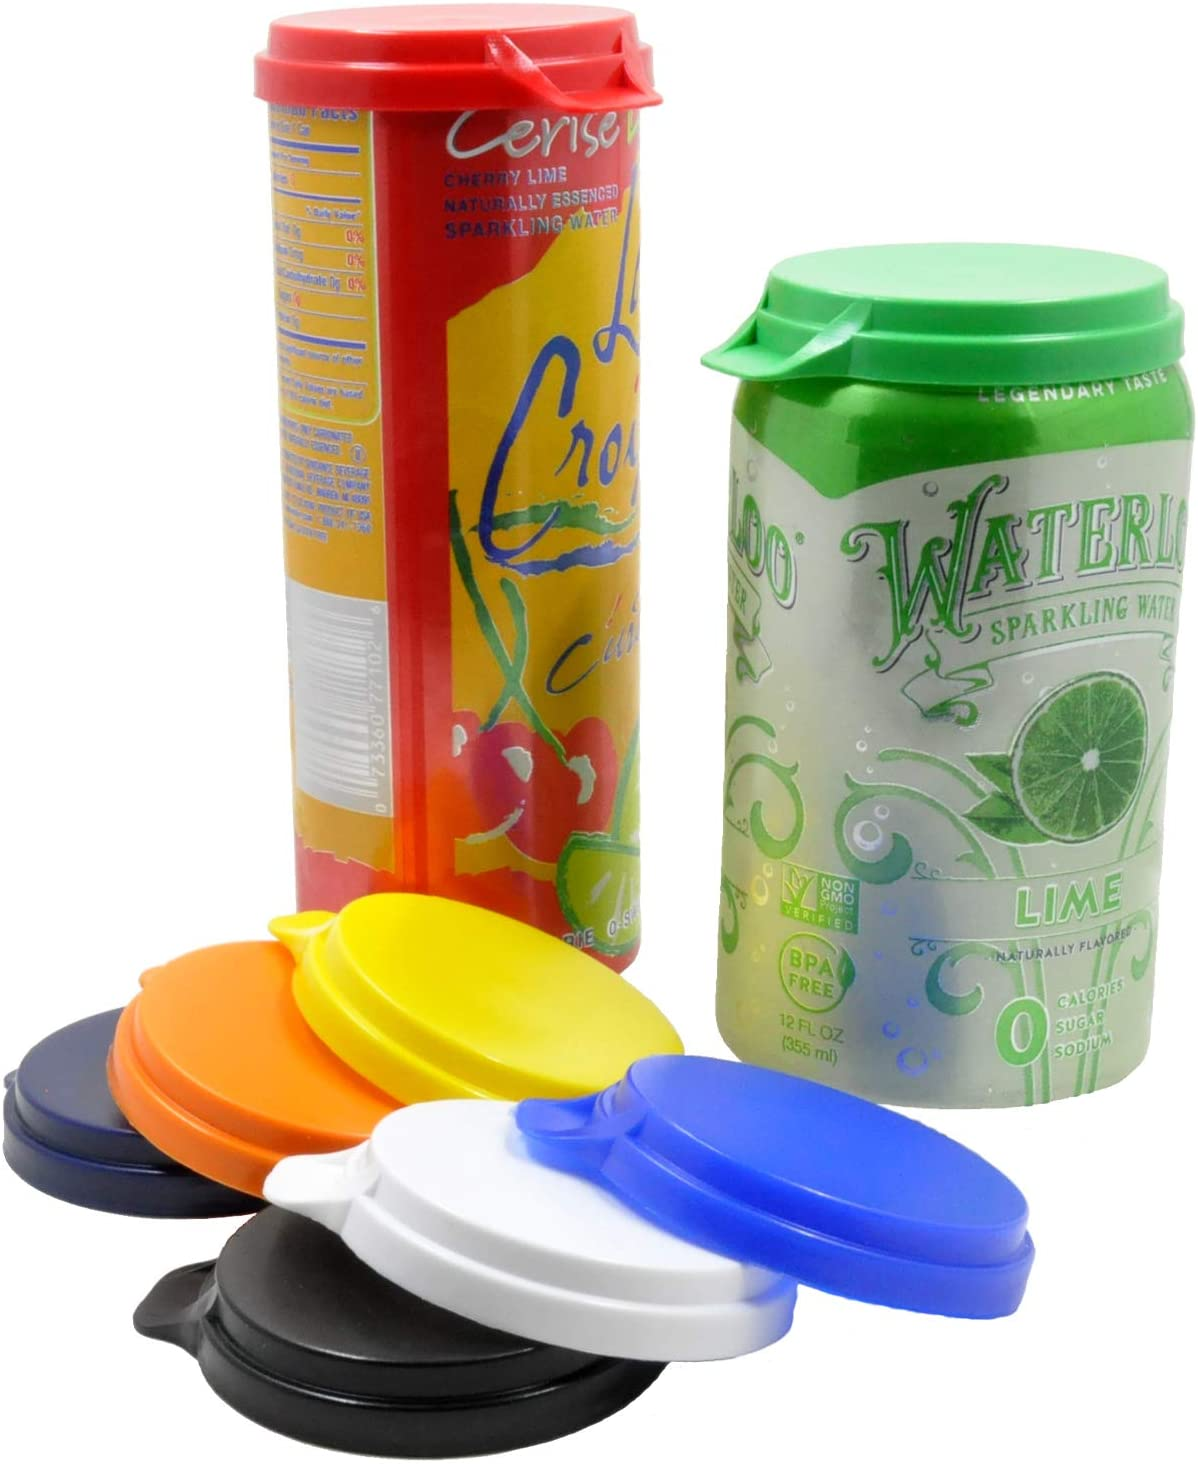 Soda Pop & Beverage Can Covers - Made in USA - Sold by Vets – Prevents Spills - Retains Fizz - BPA-Free